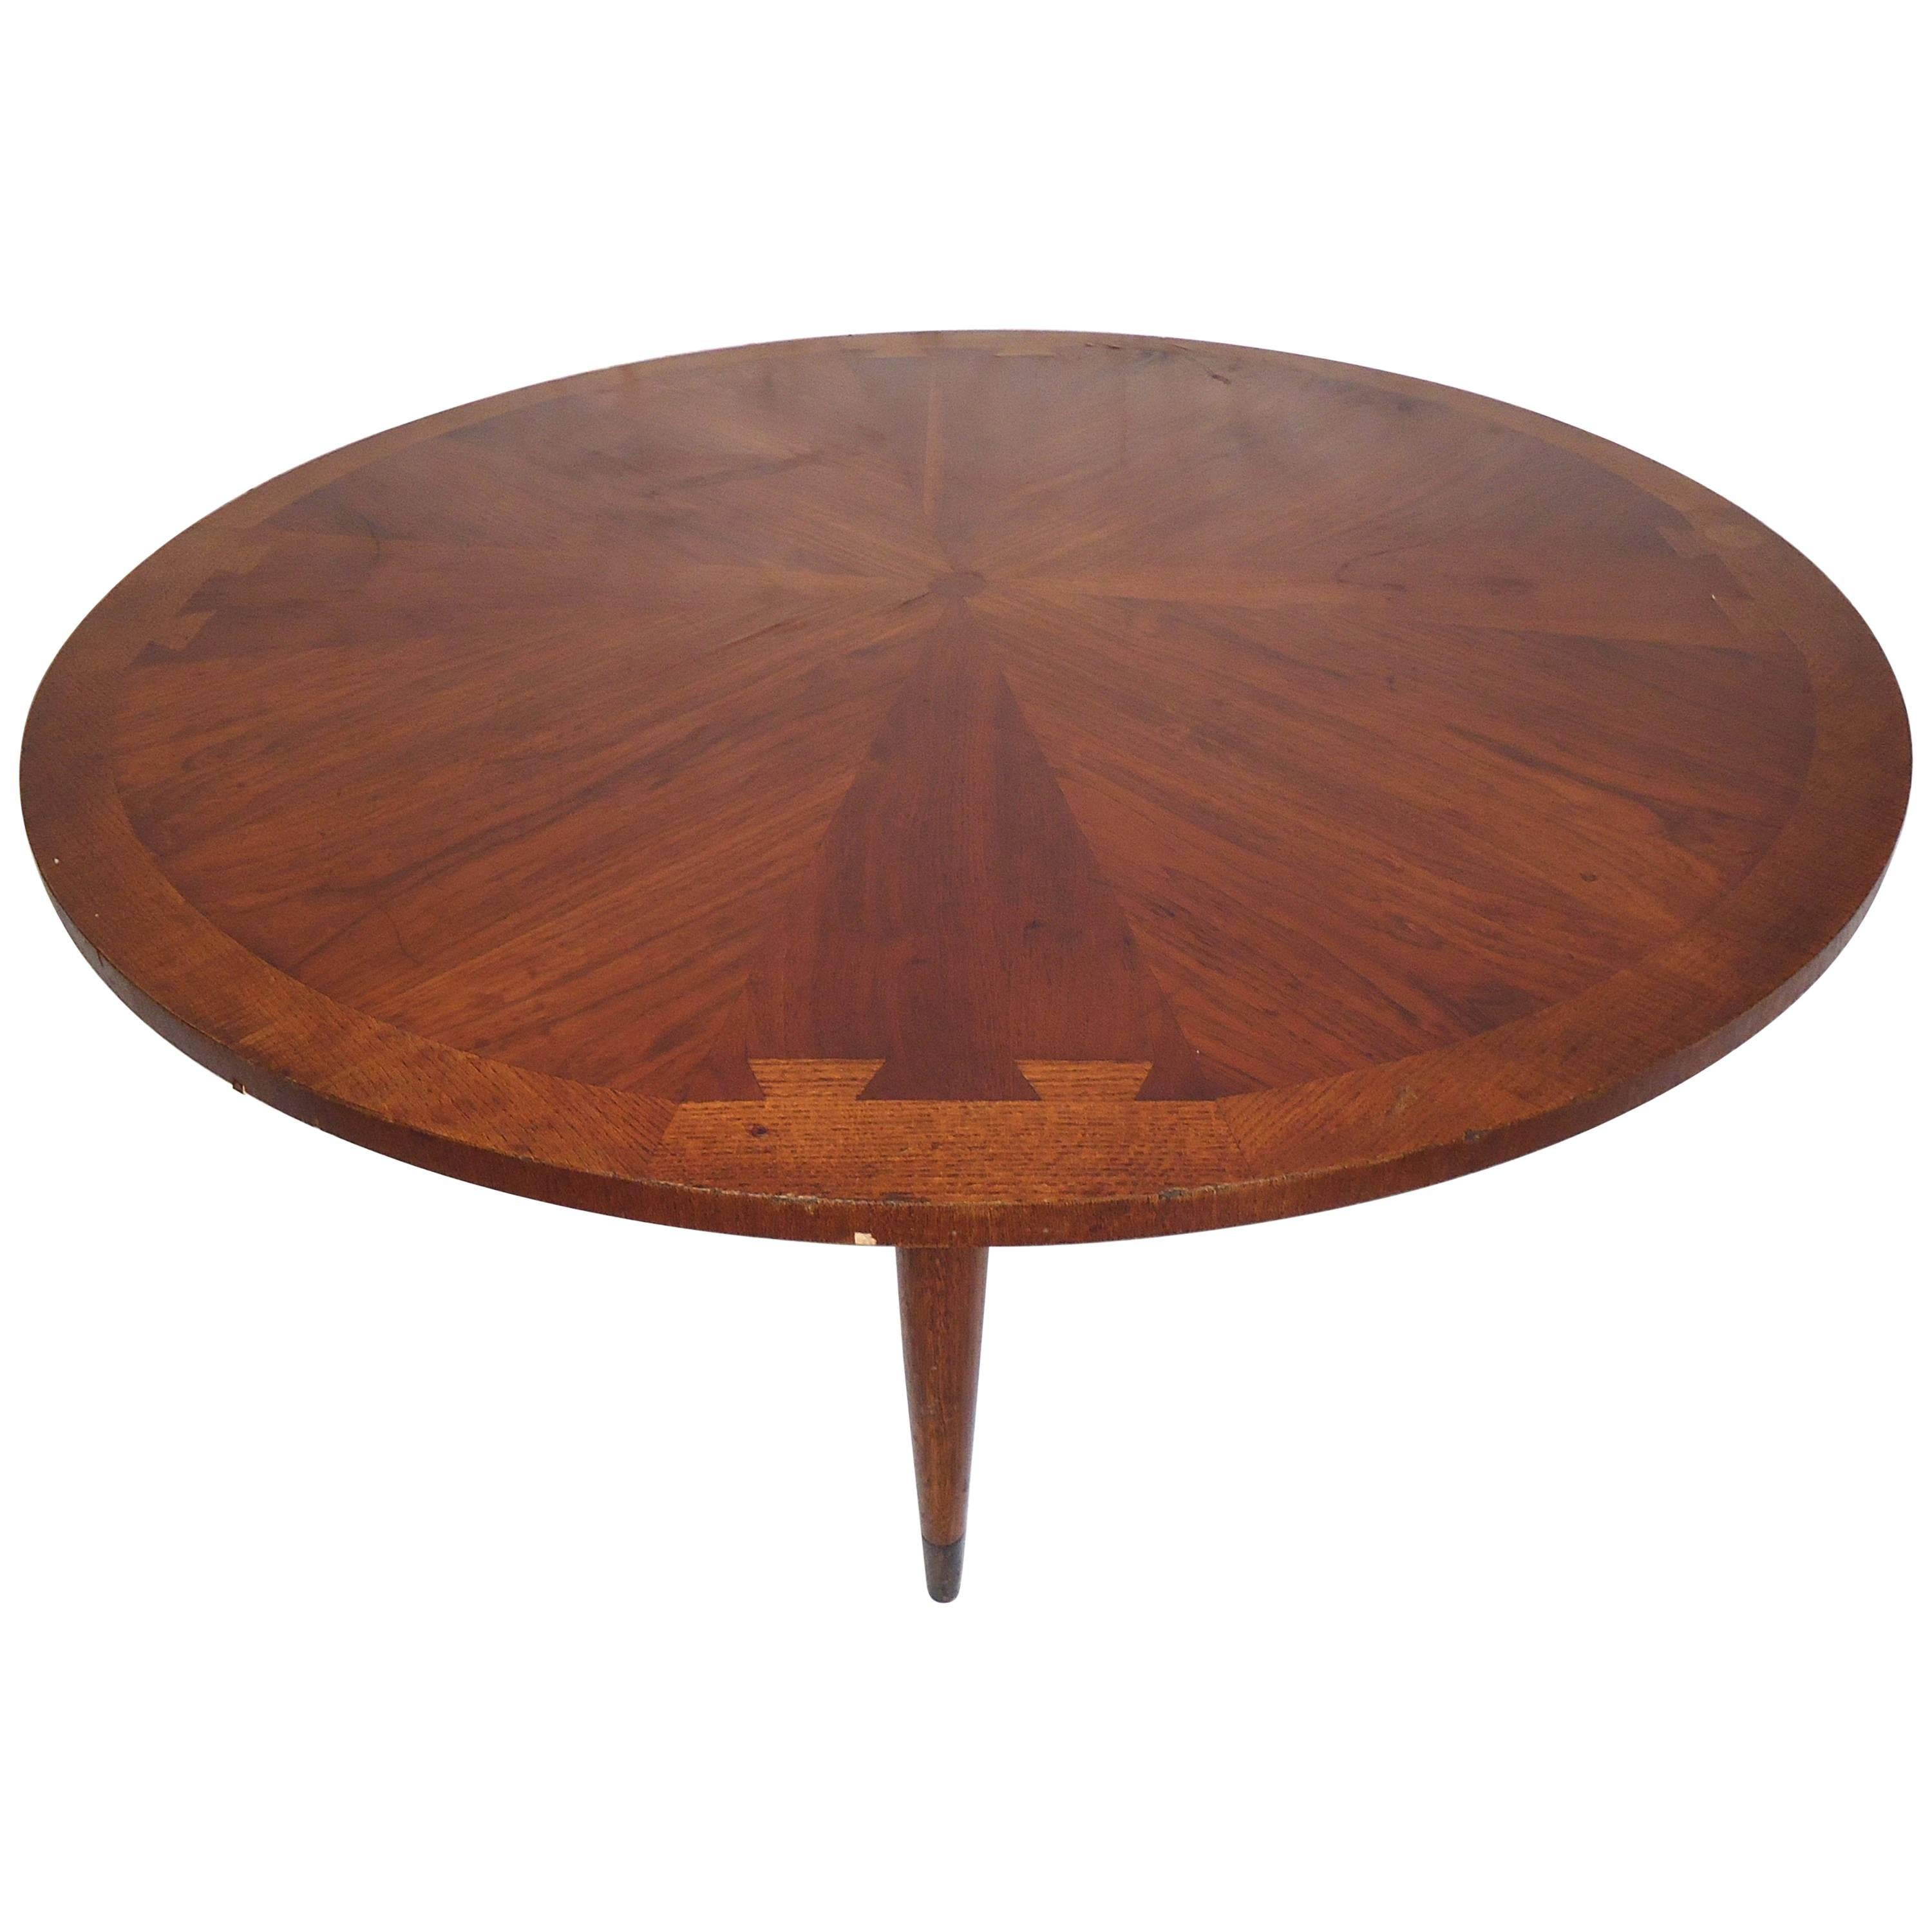 Incroyable Midcentury Round Lane Coffee Table For Sale